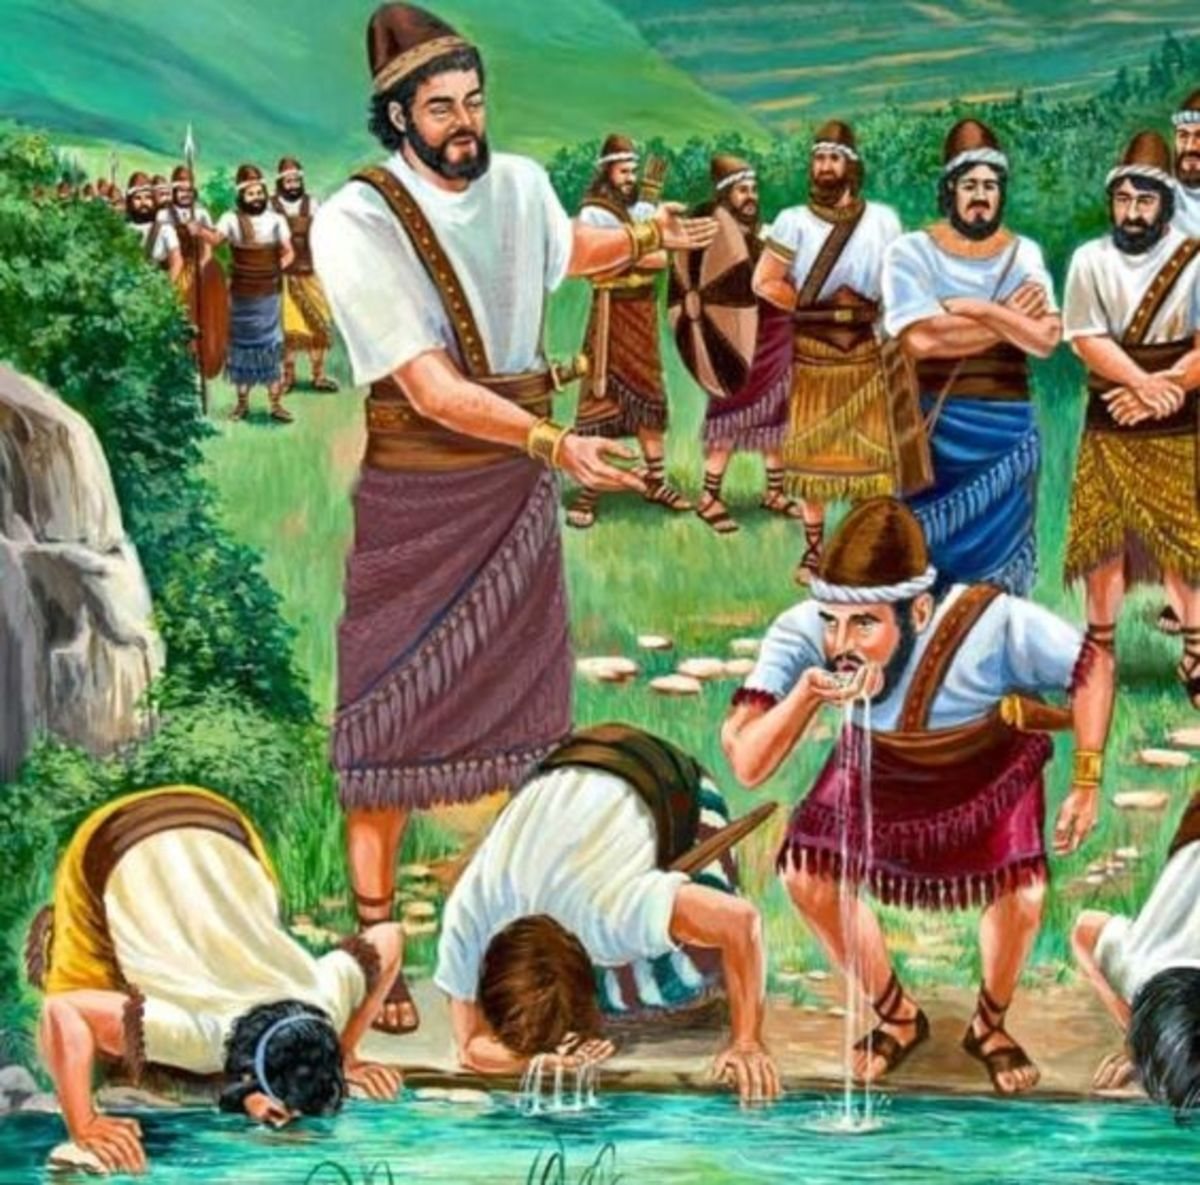 Gideon's army drinking water from a stream